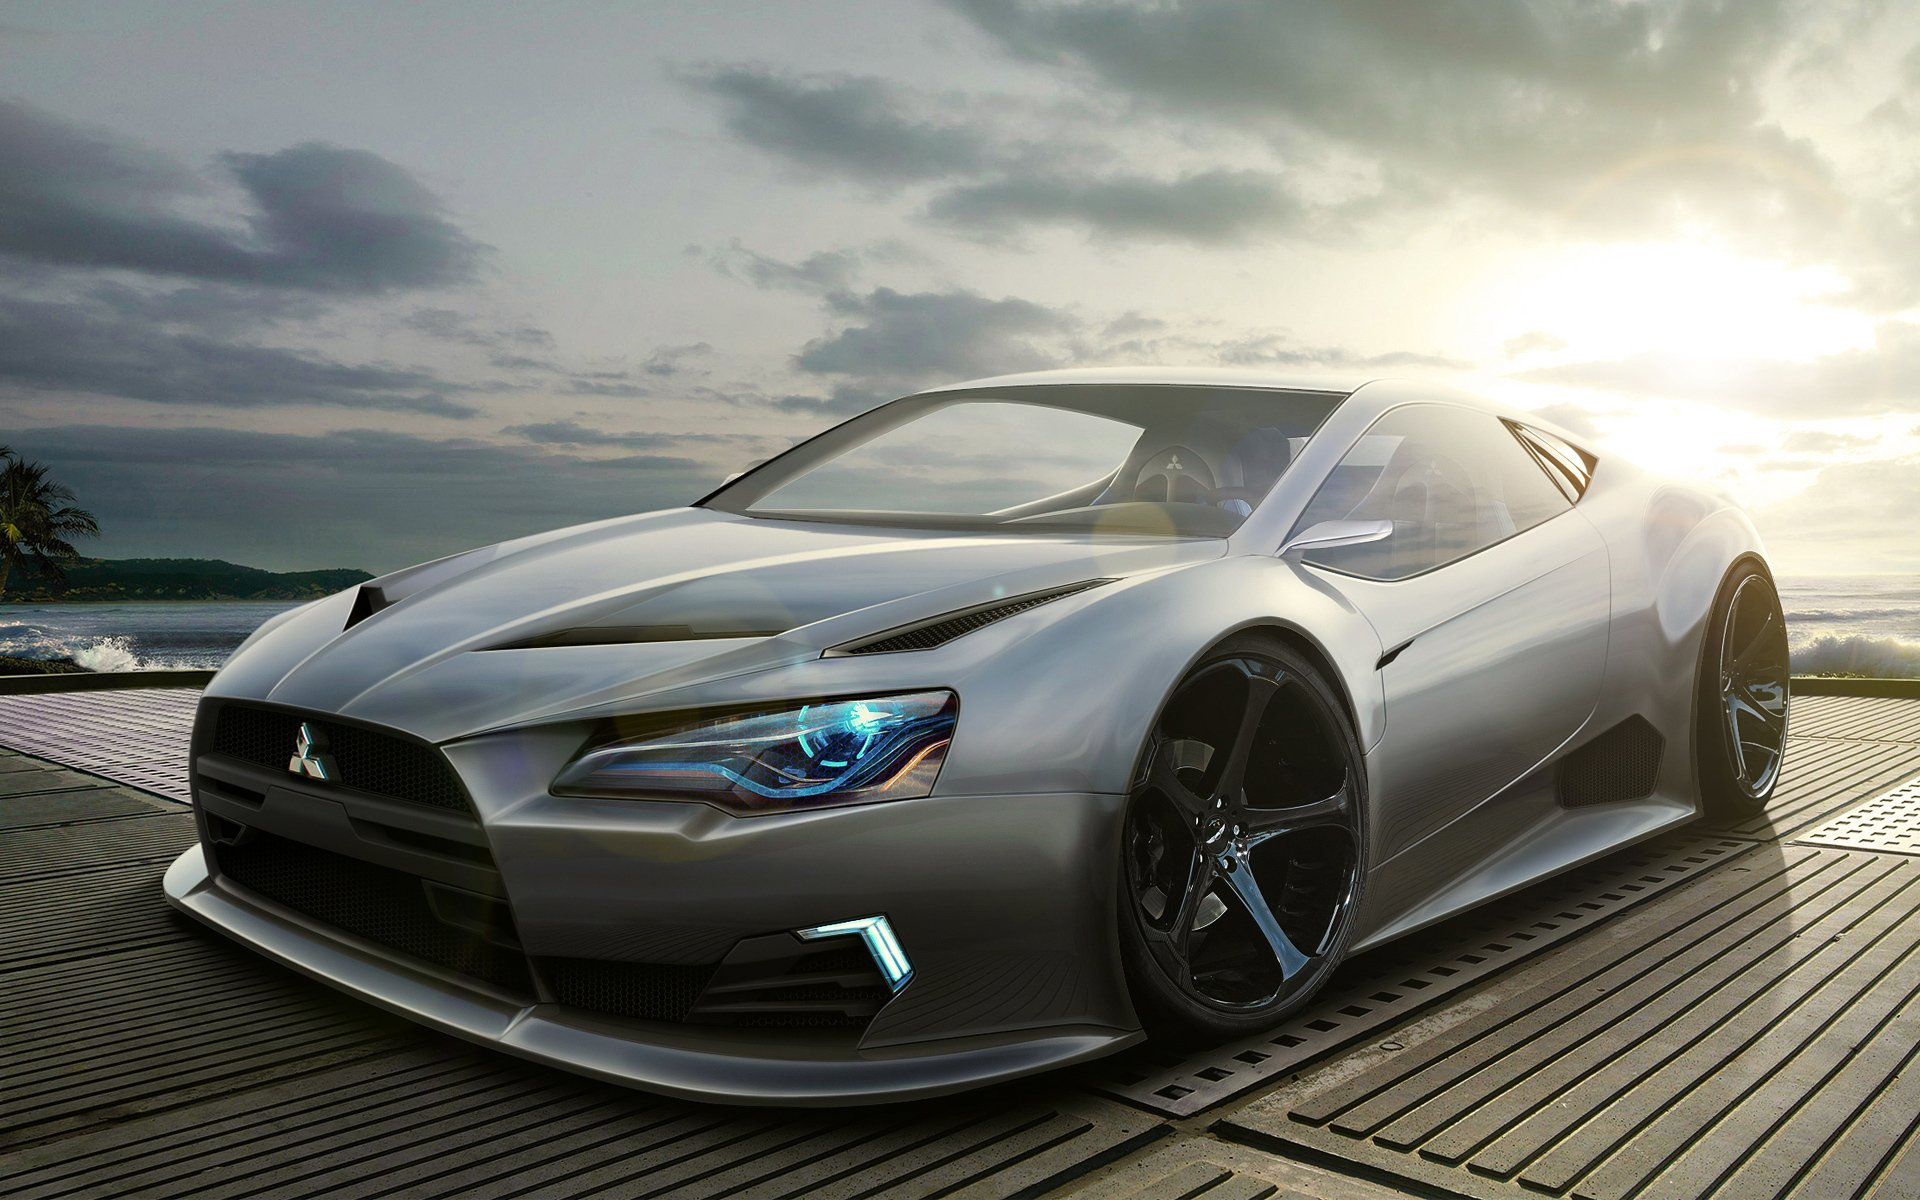 Mitsubishi Concept Wallpapers HD Wallpapers 1920x1200